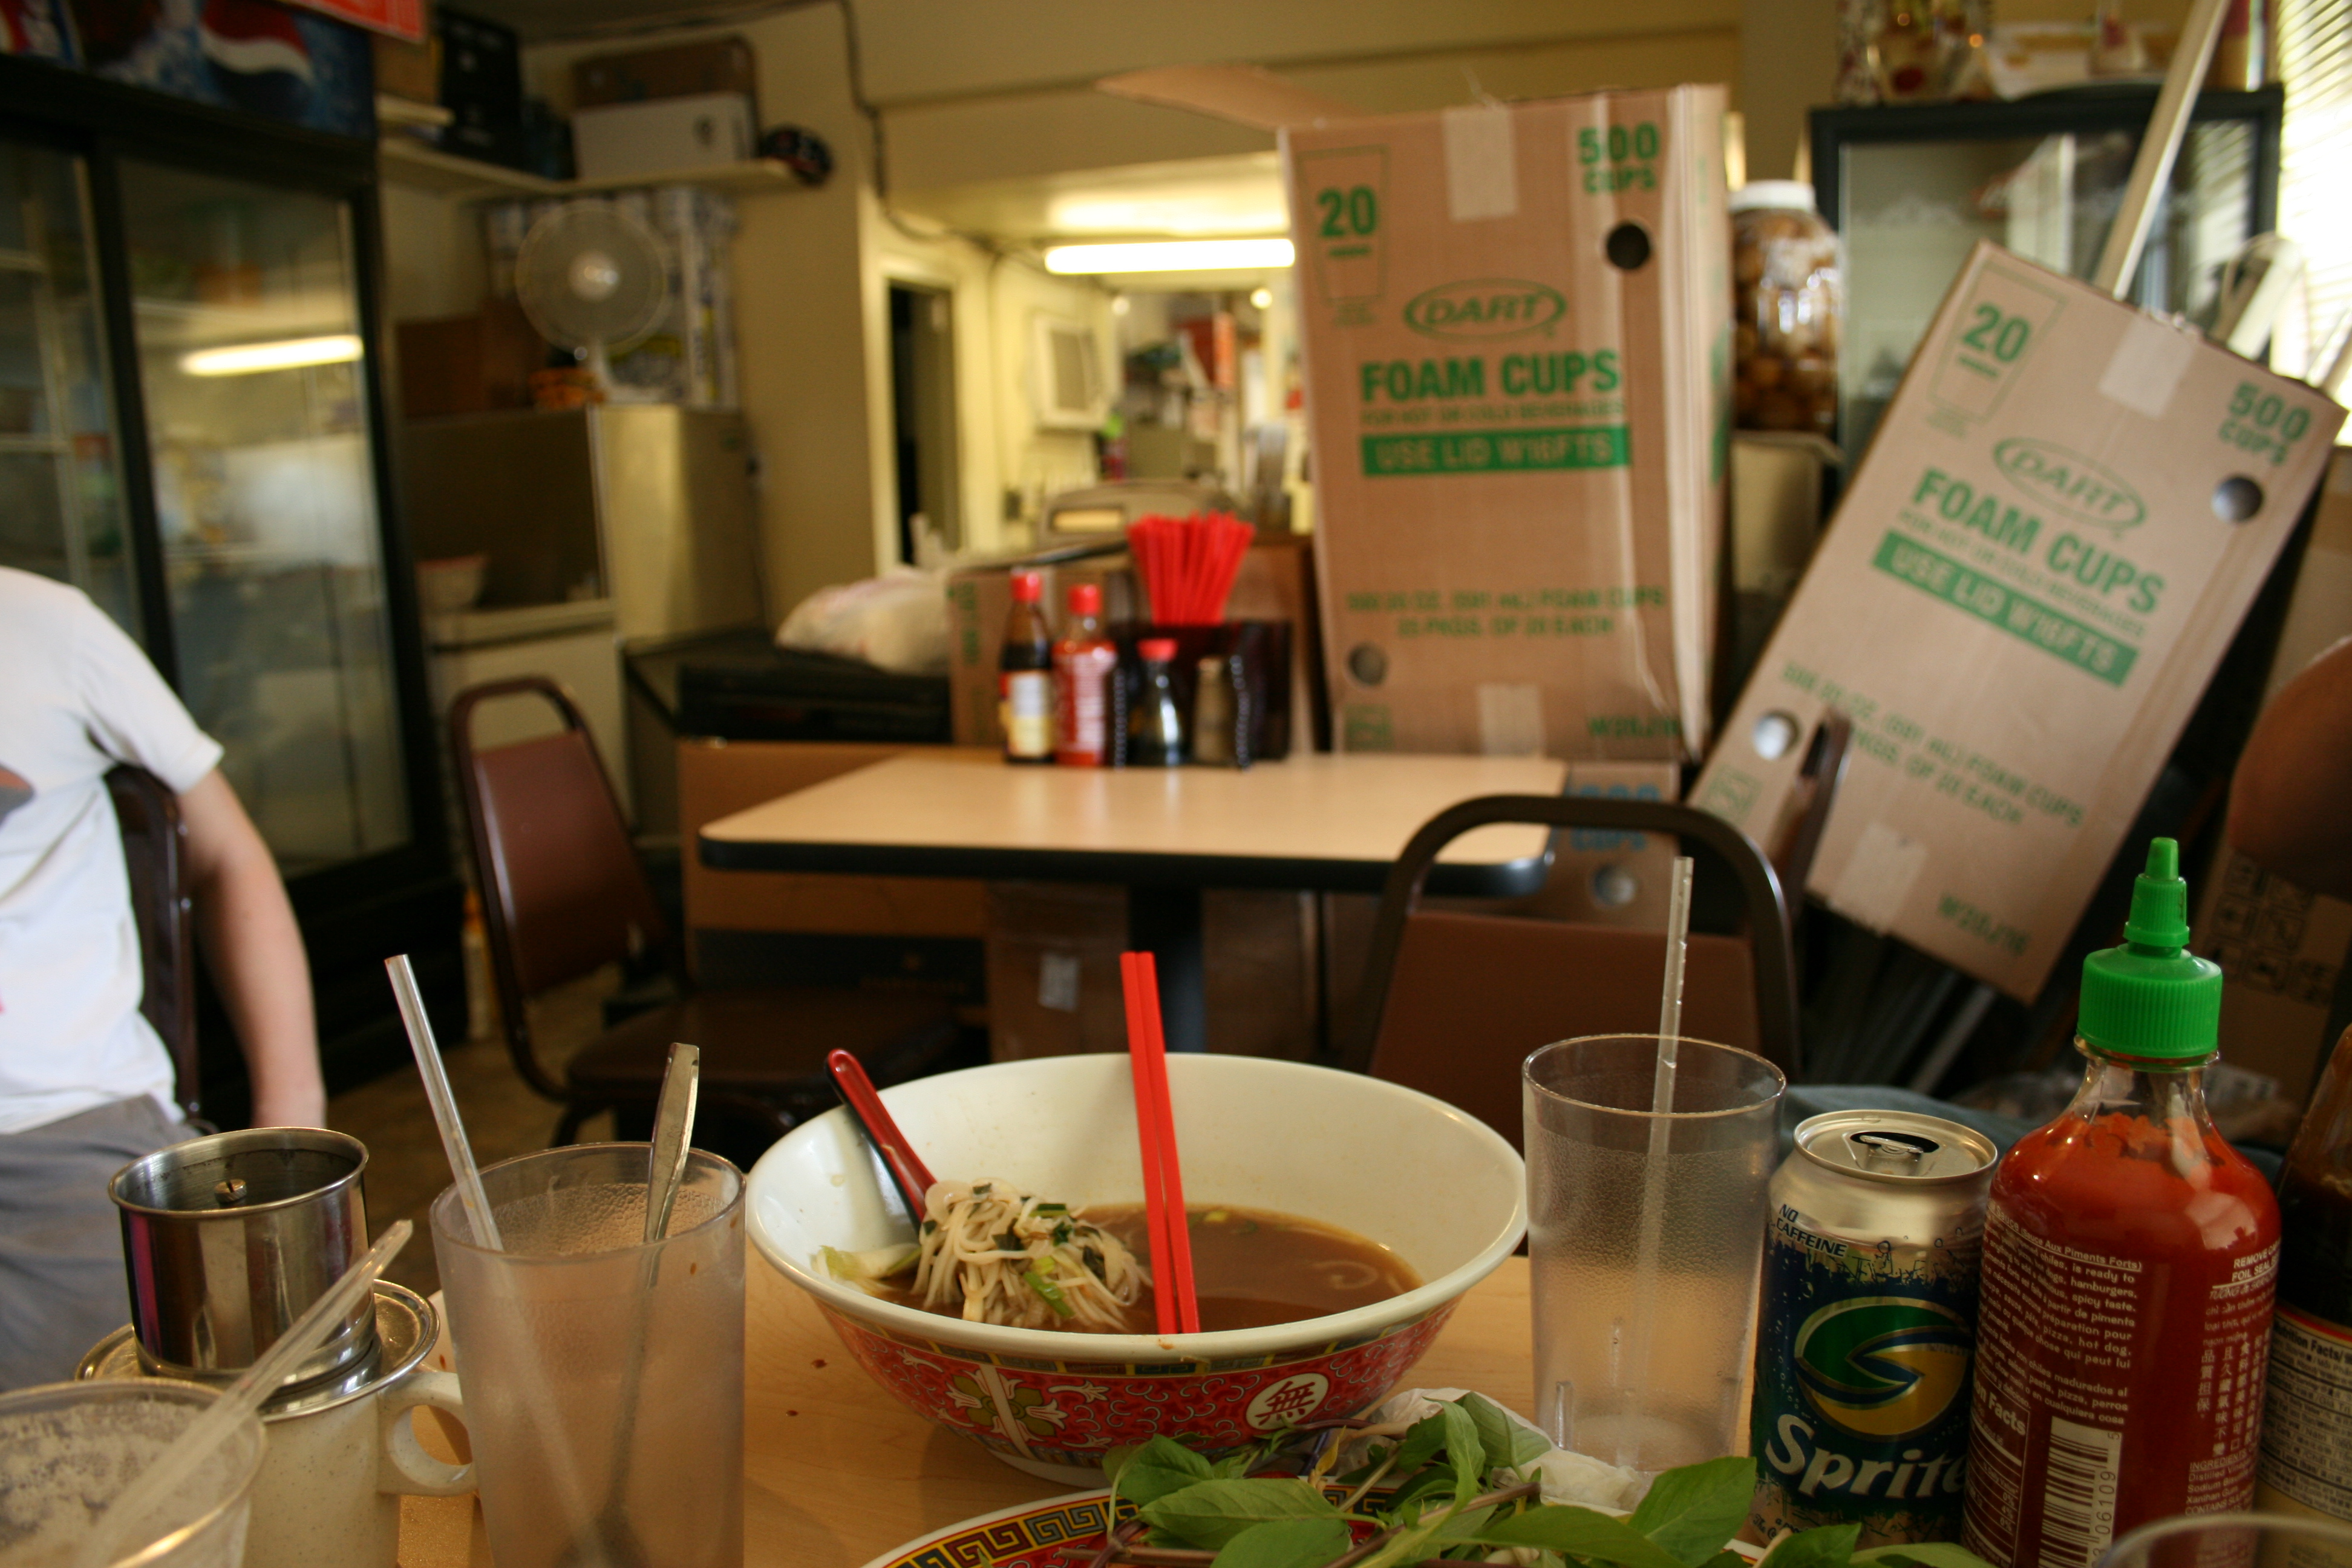 A pho-ntastic meal